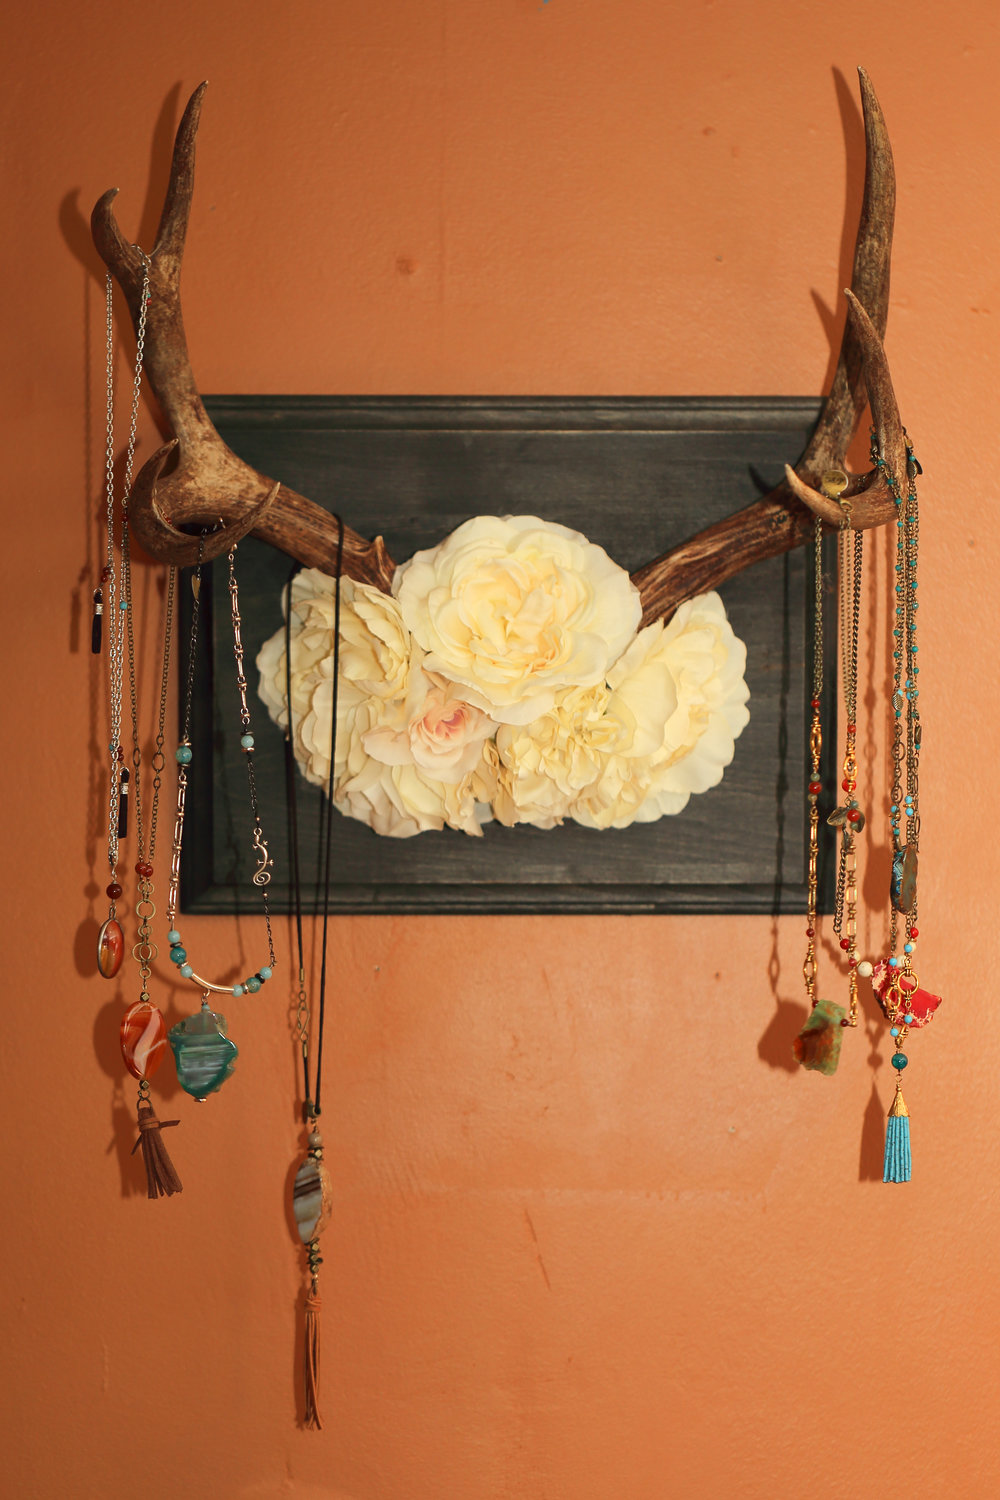 Artfully displayed jewelry